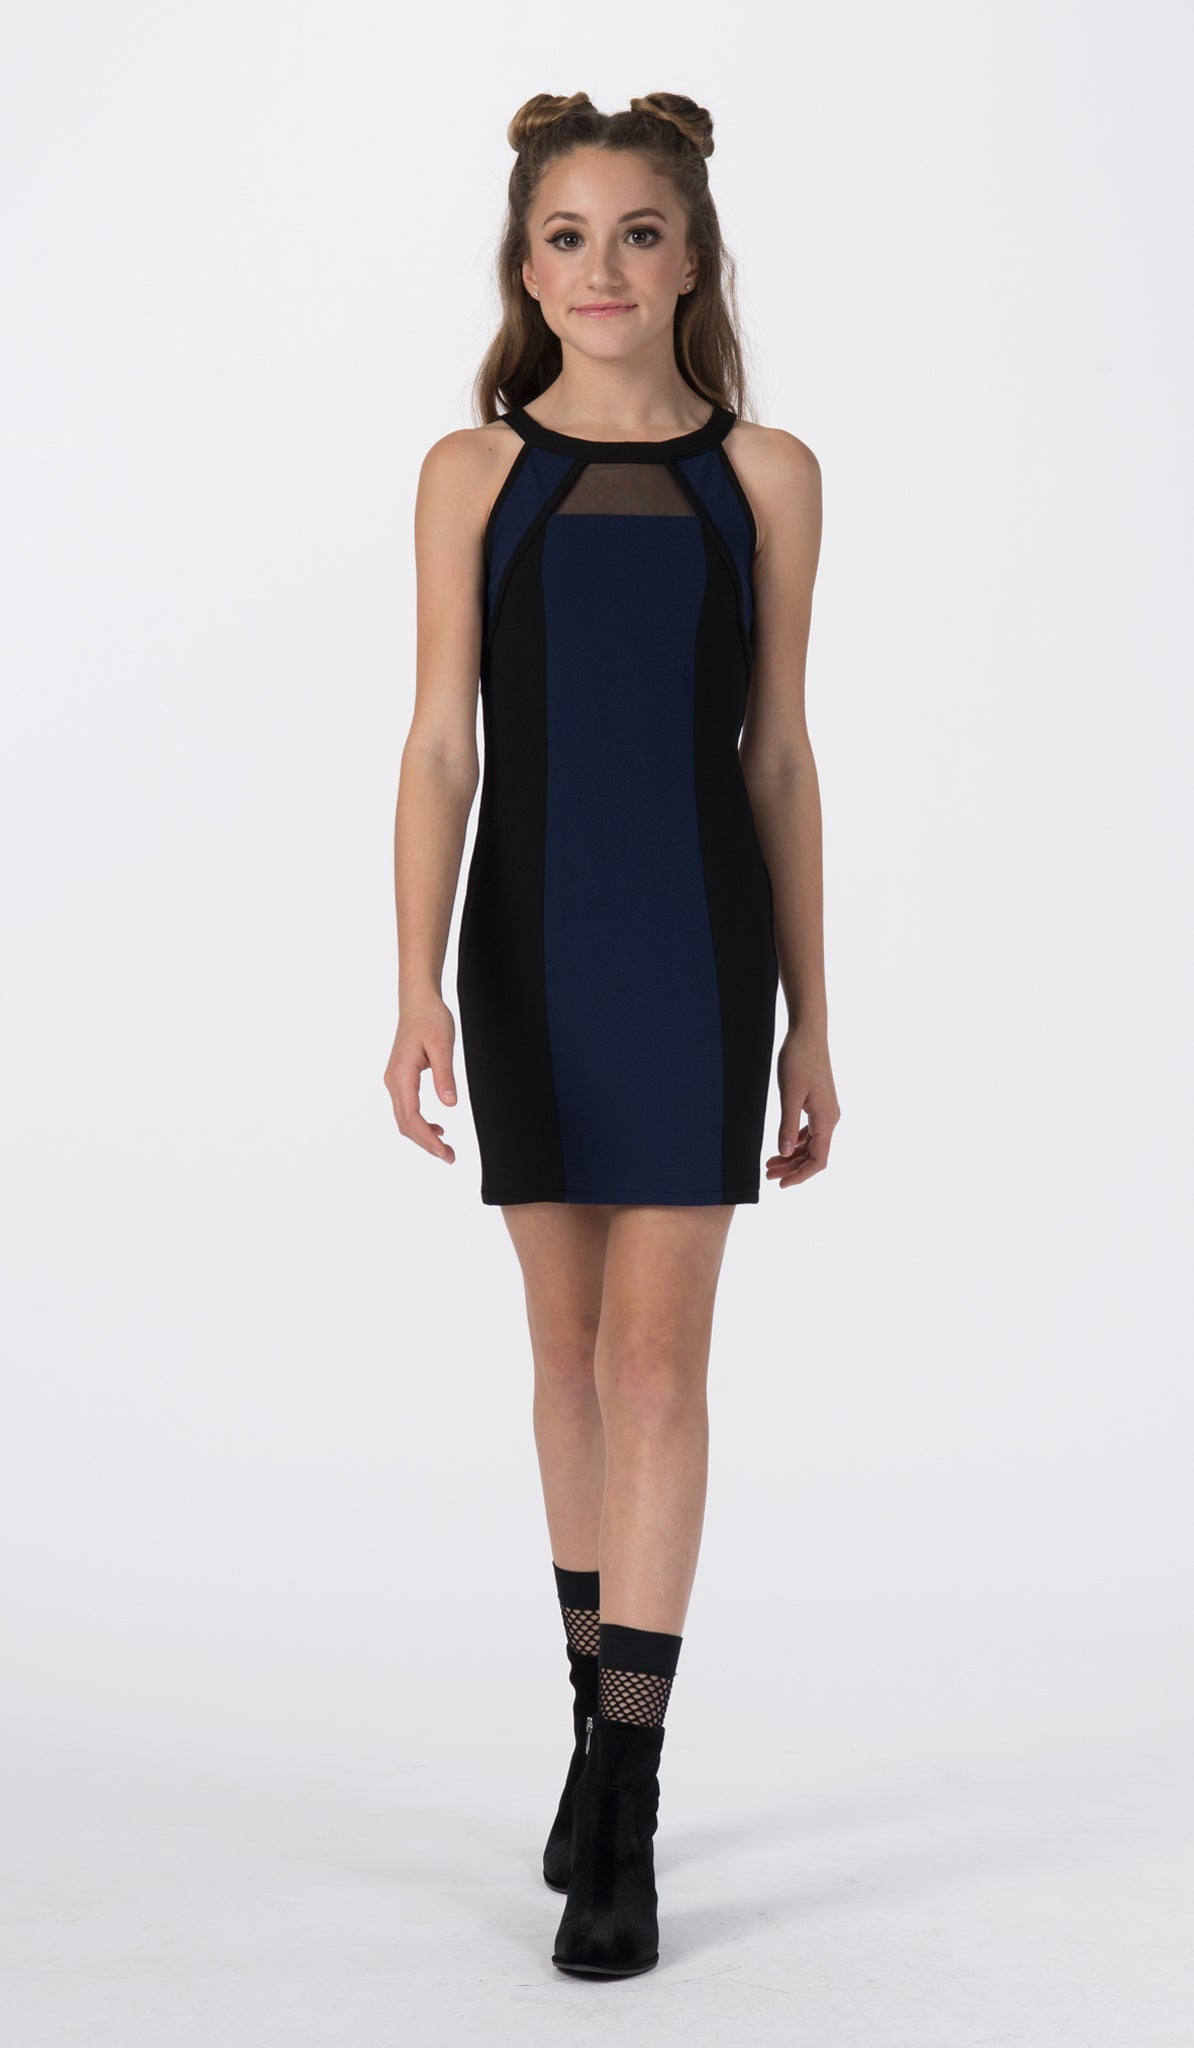 Sally Miller color block body con special occasion dress front view.